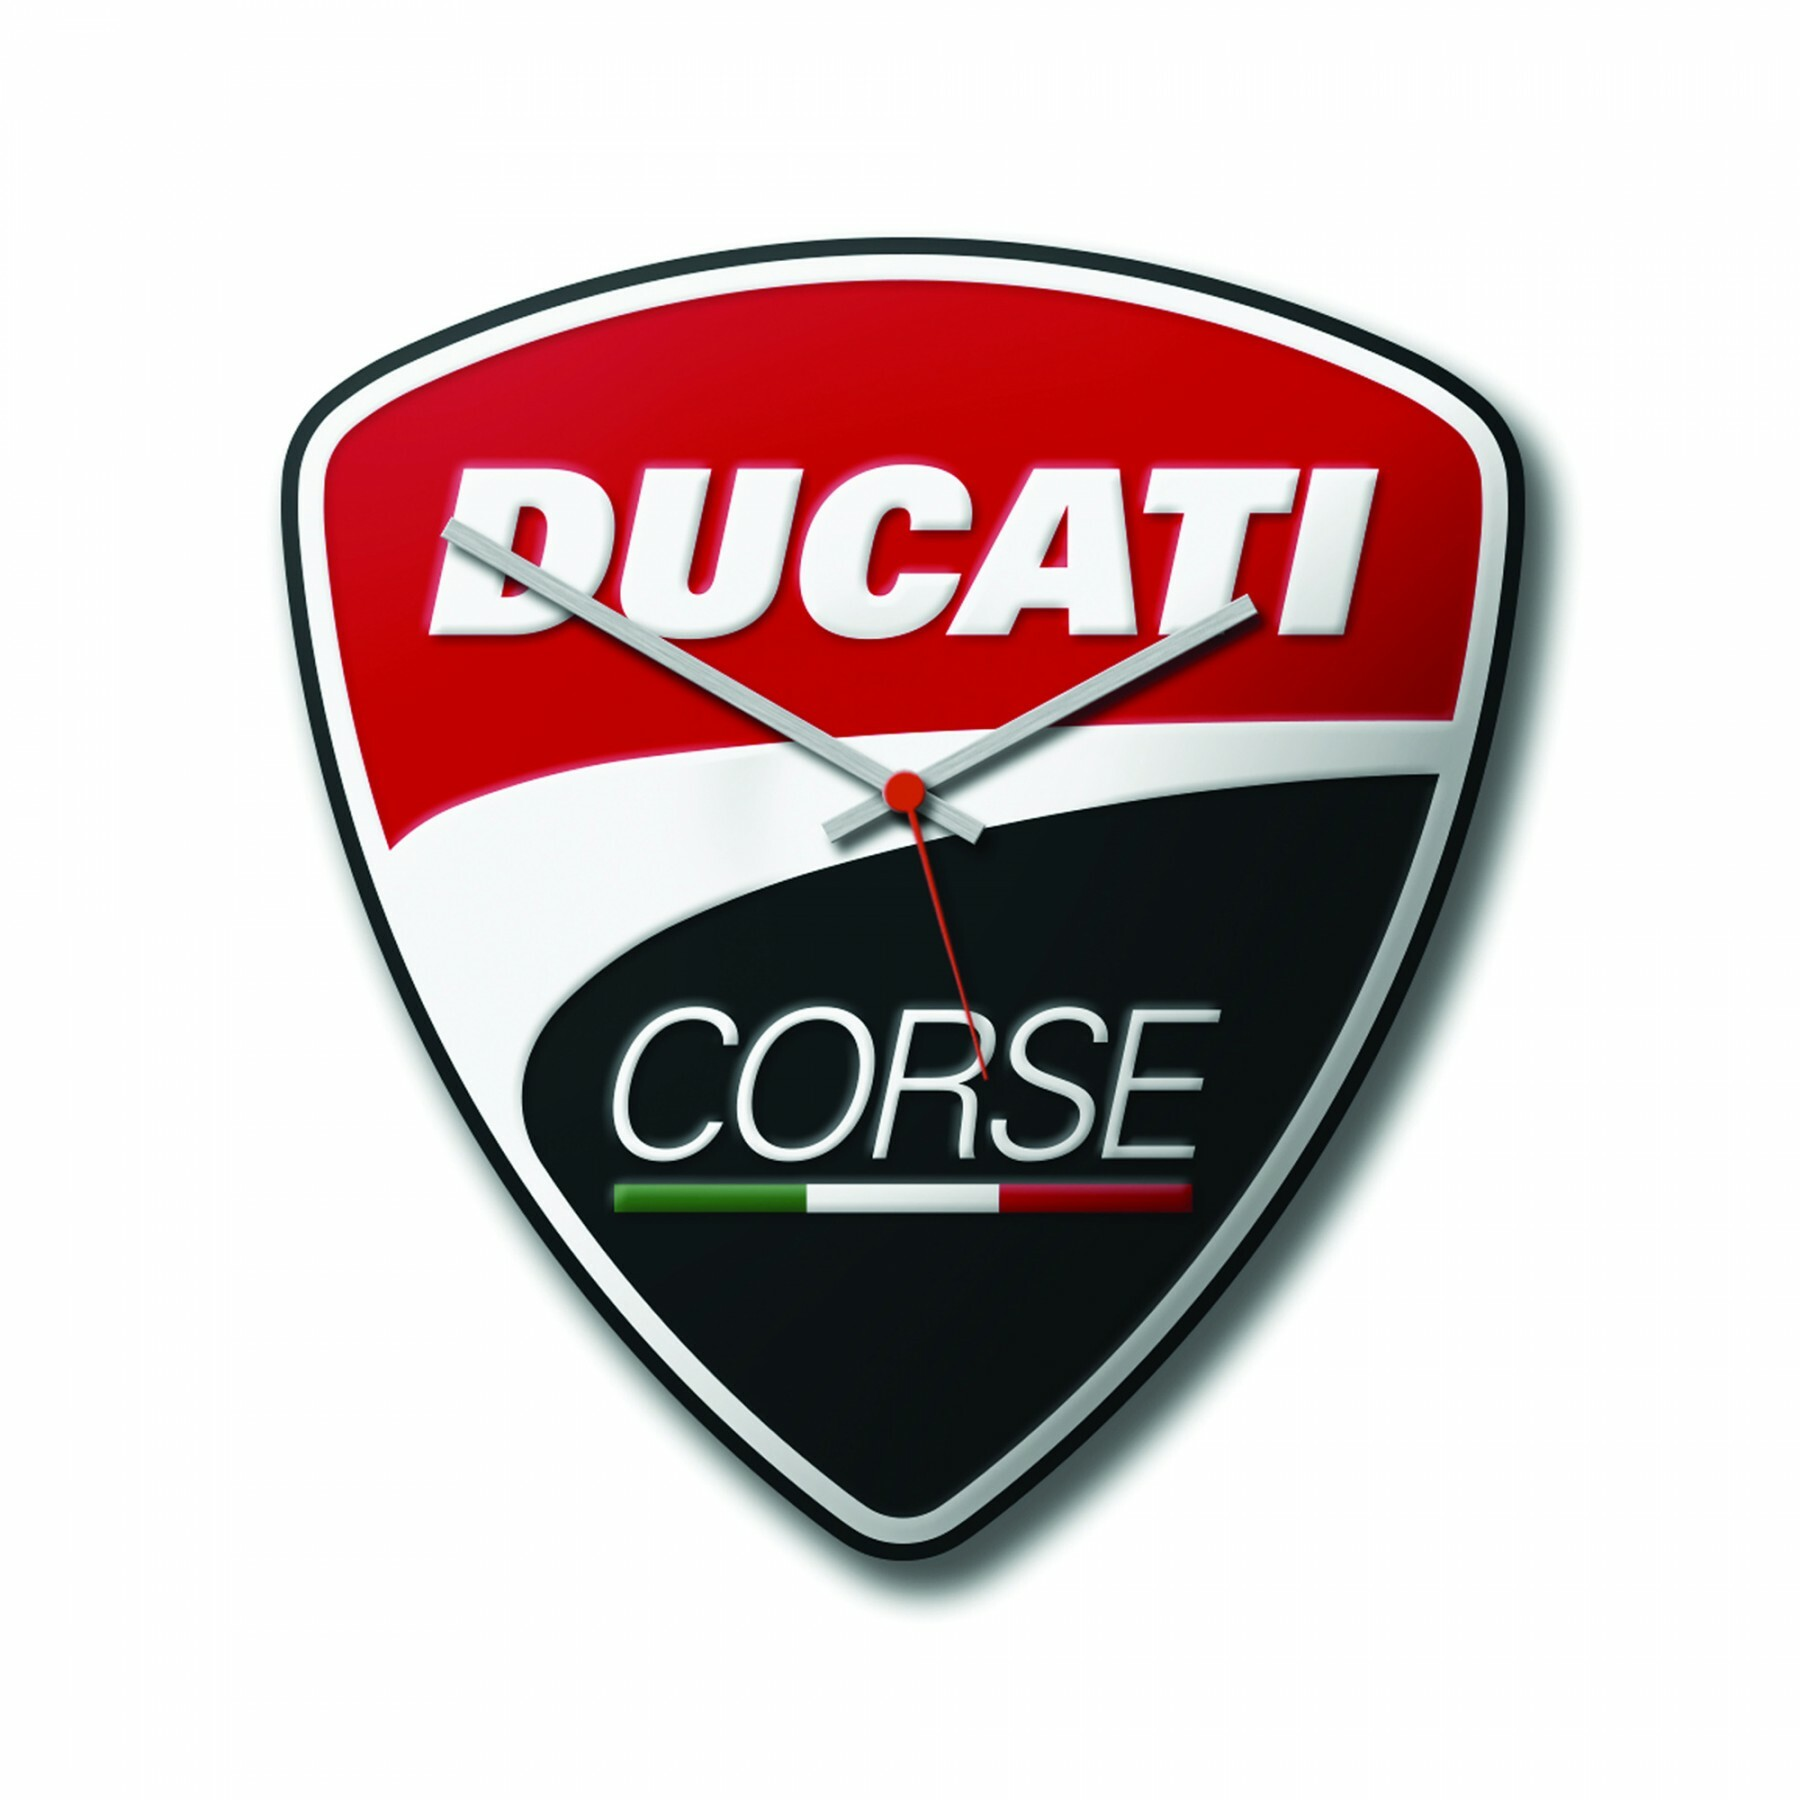 Wall clock Power Ducati Corse 28x30 cm 987699491